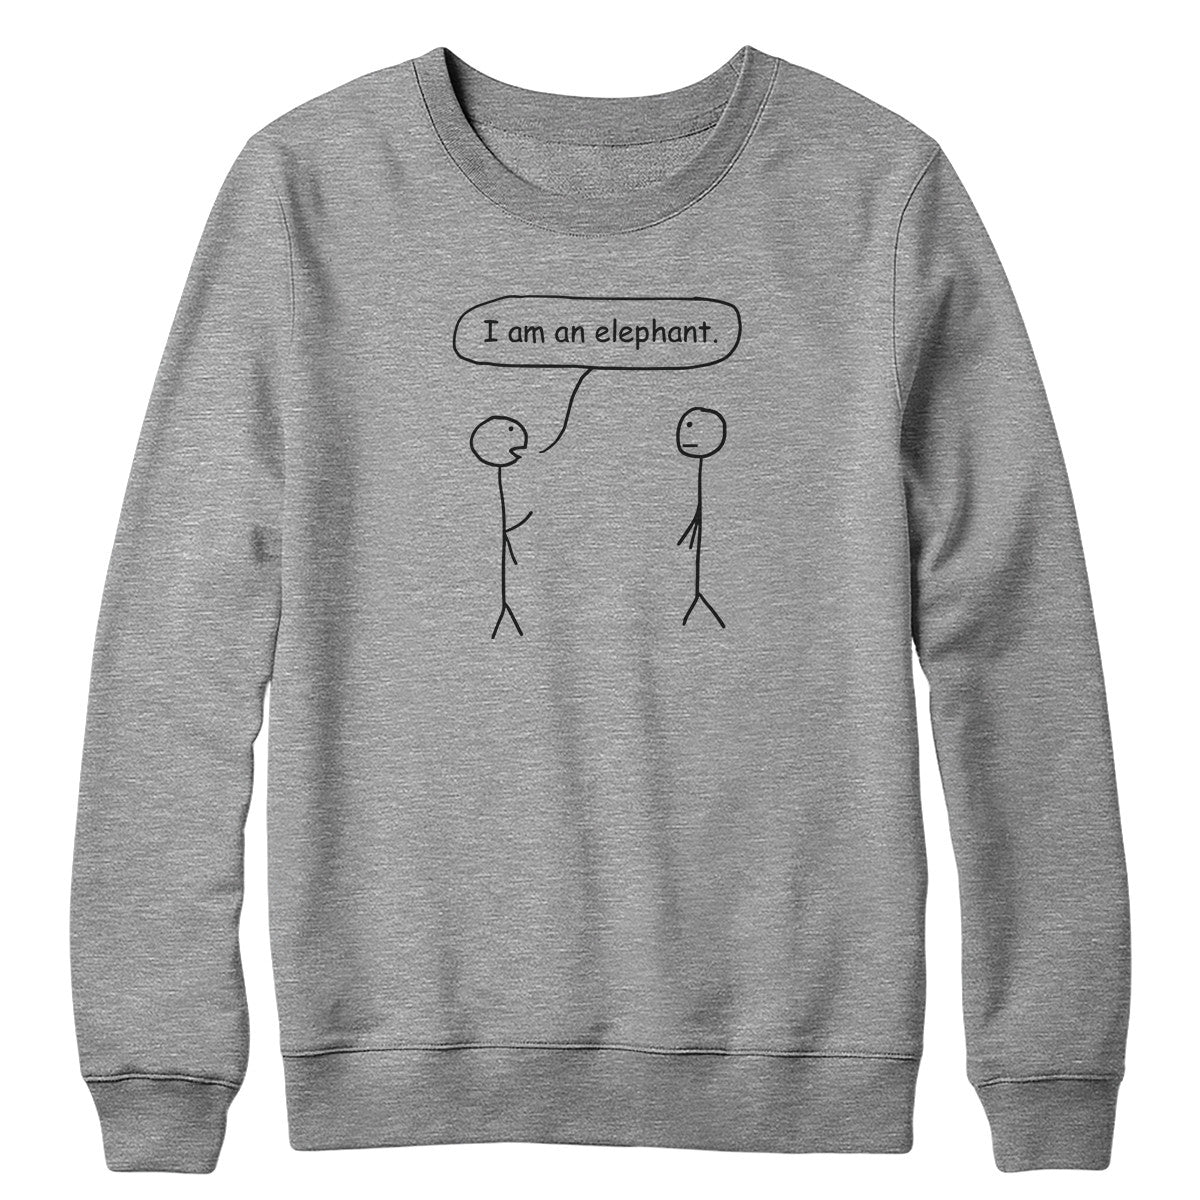 I am an Elephant Crewneck Sweatshirt